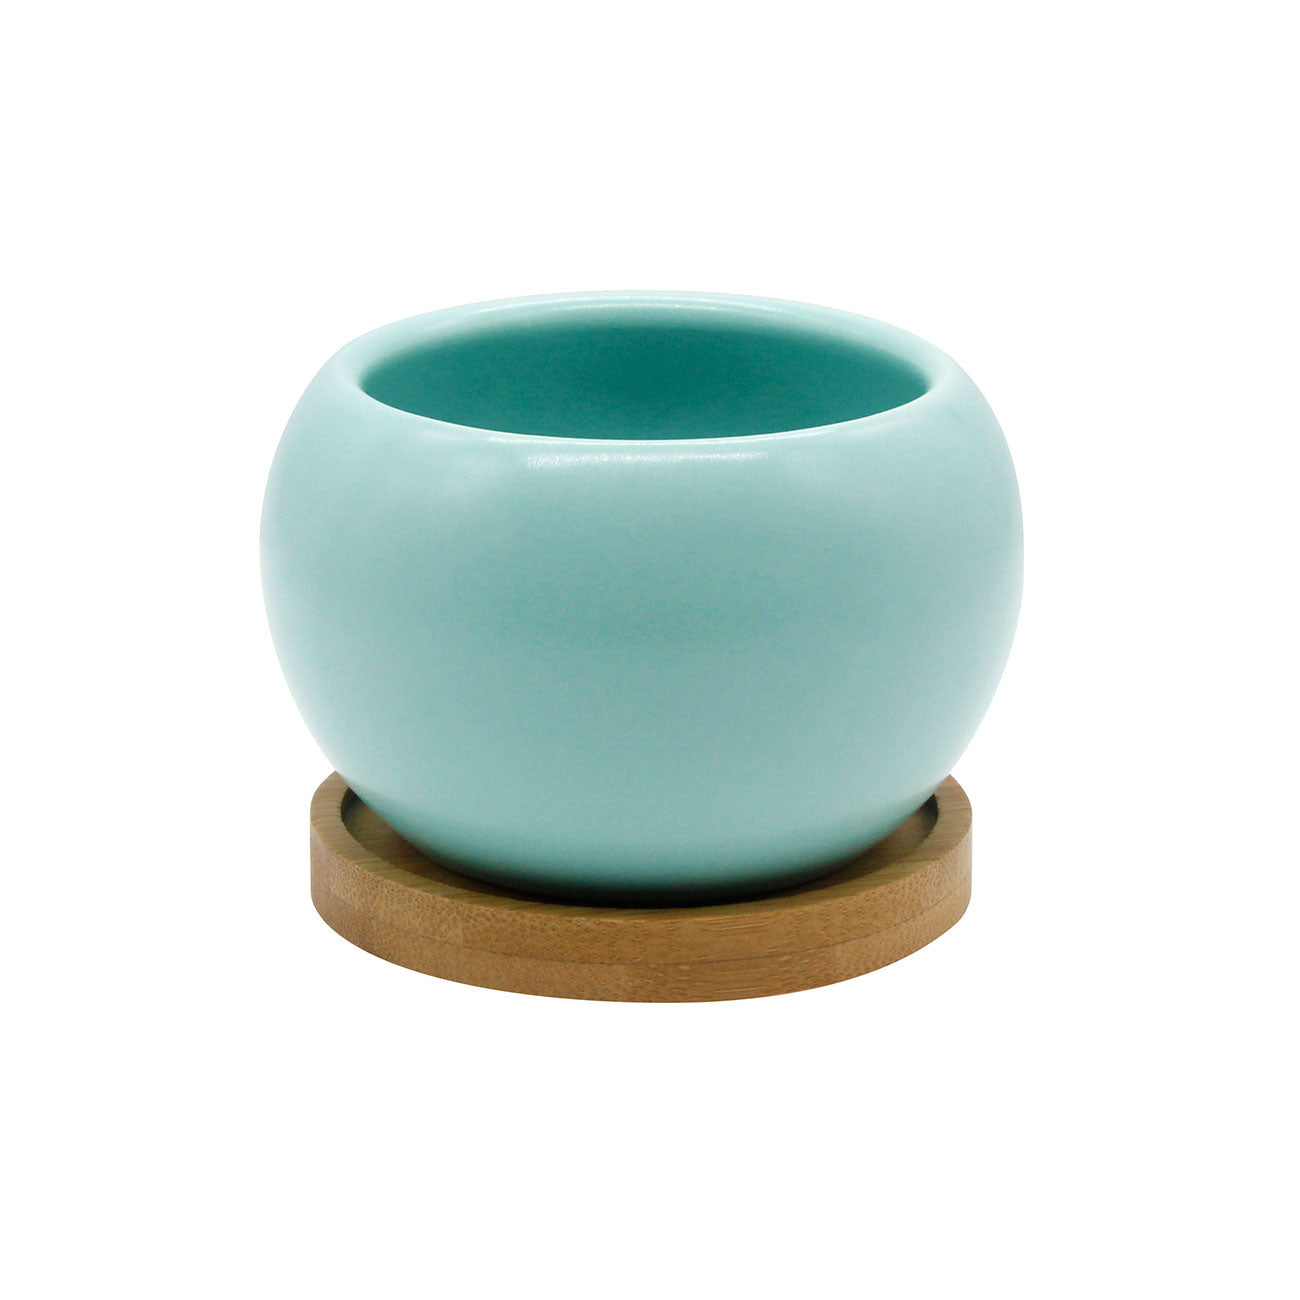 Planter & Bamboo Saucer - Blue | O Yeah Gifts!